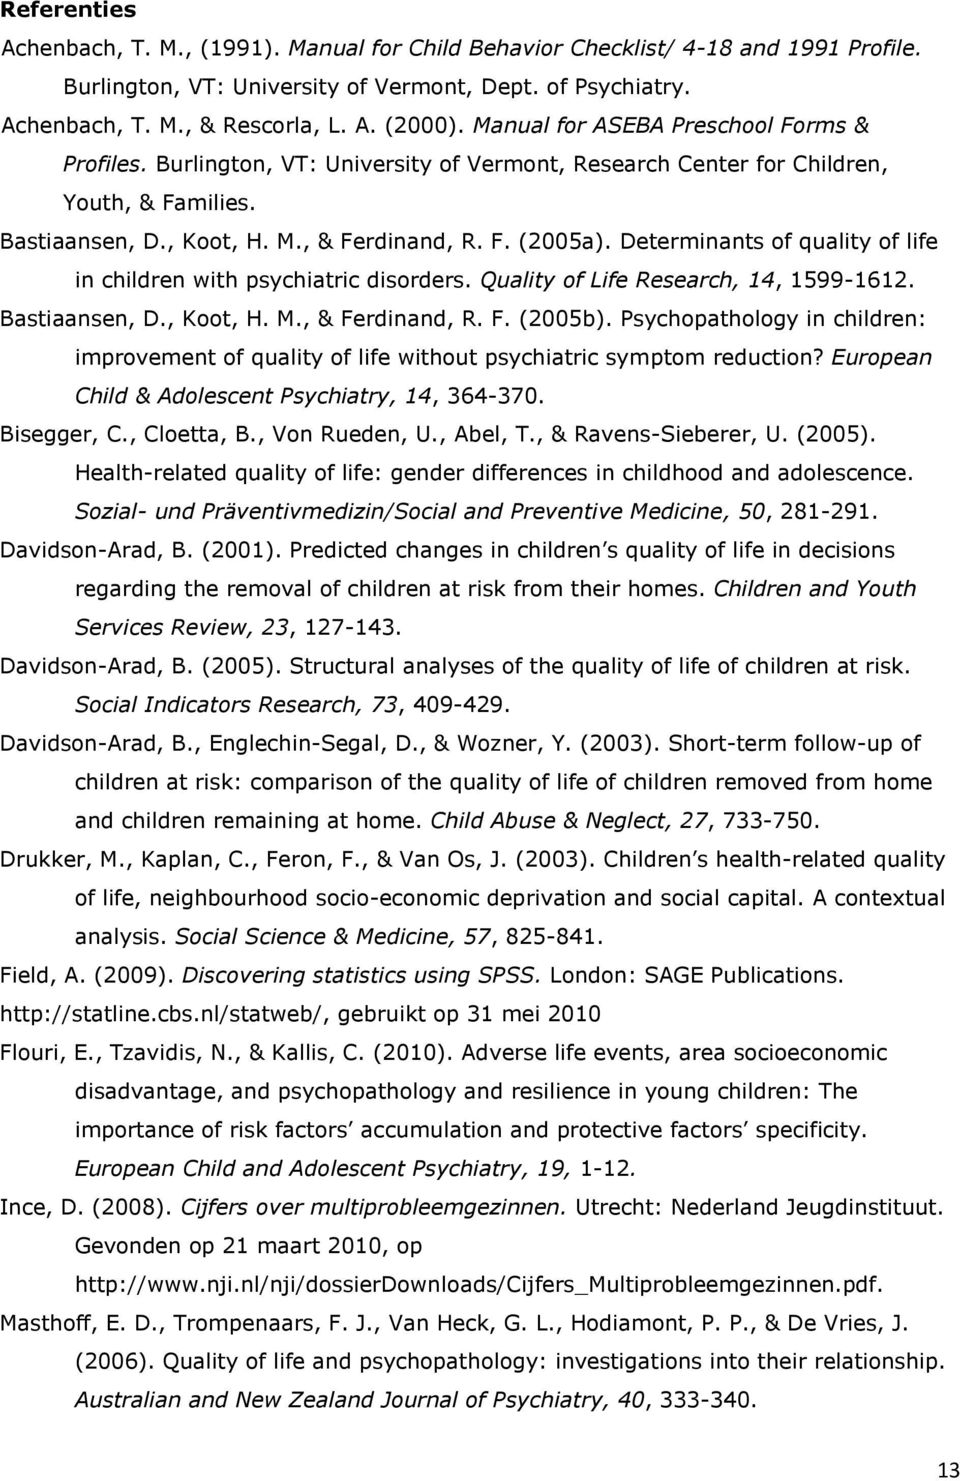 Determinants of quality of life in children with psychiatric disorders. Quality of Life Research, 14, 1599-1612. Bastiaansen, D., Koot, H. M., & Ferdinand, R. F. (2005b).